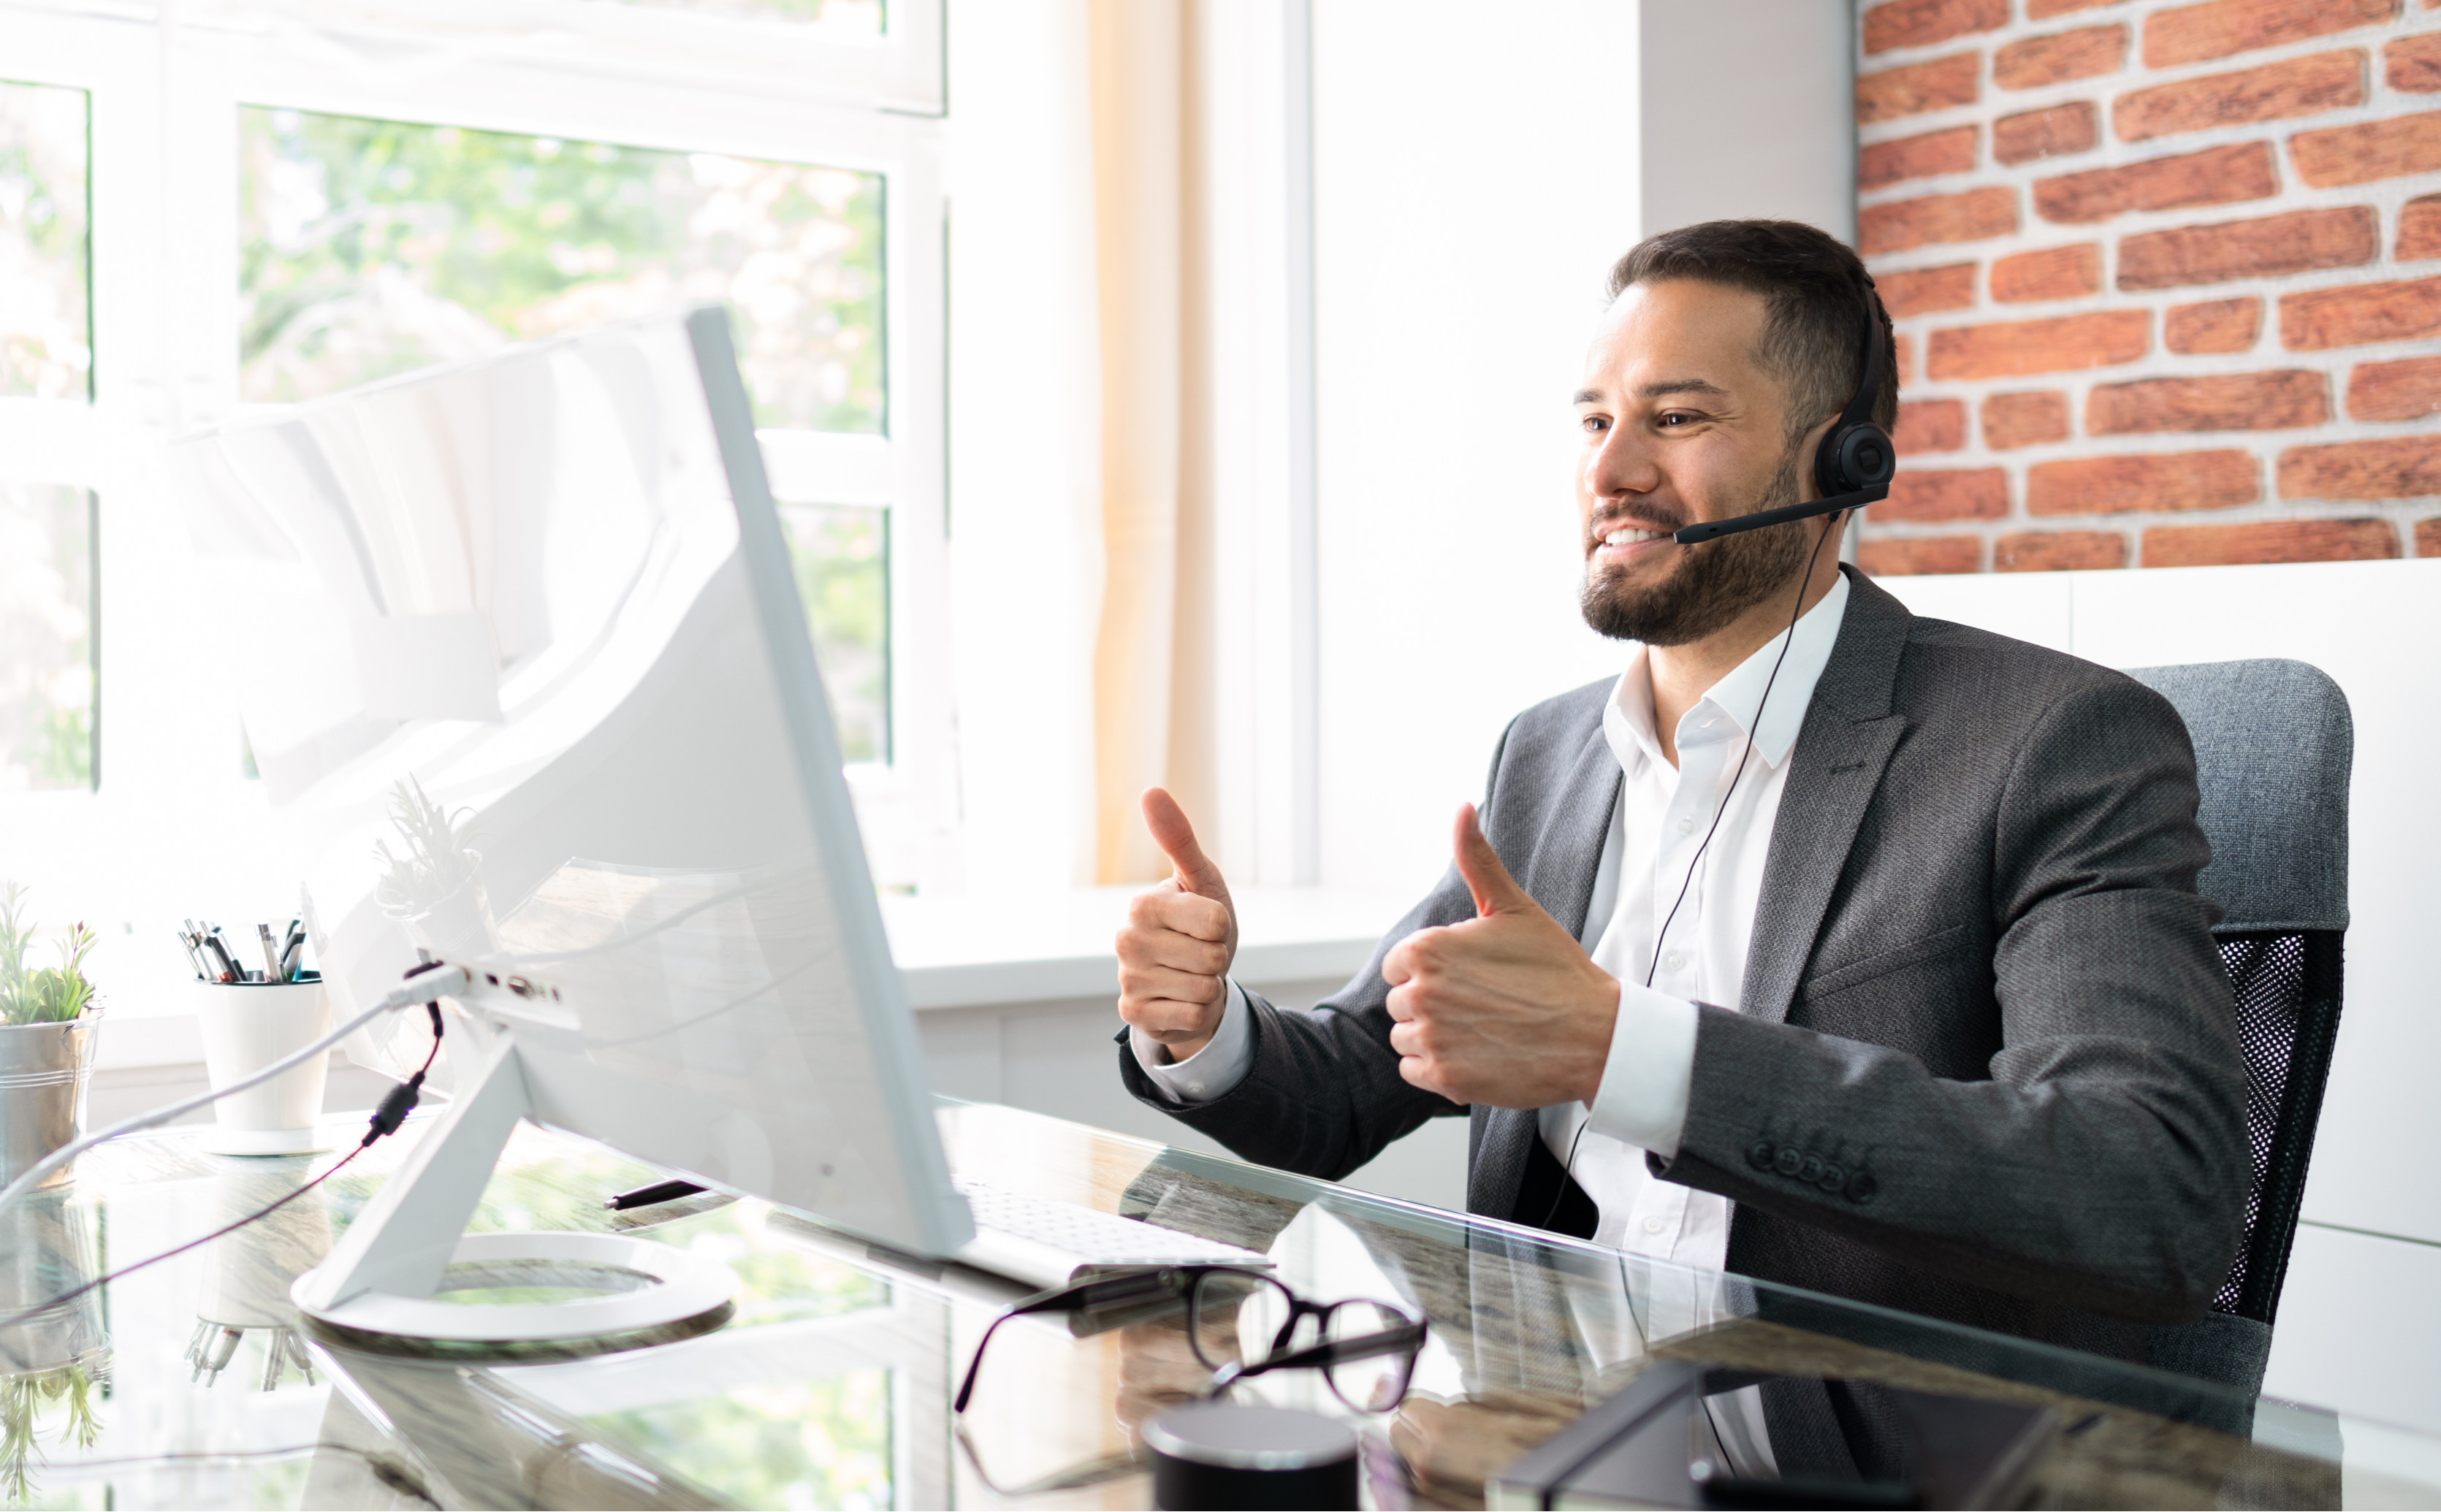 Customer service agent bearded man on video call with client, giving two thumbs up to camera. Business man is smiling and wearing a headset. VOIP connection.